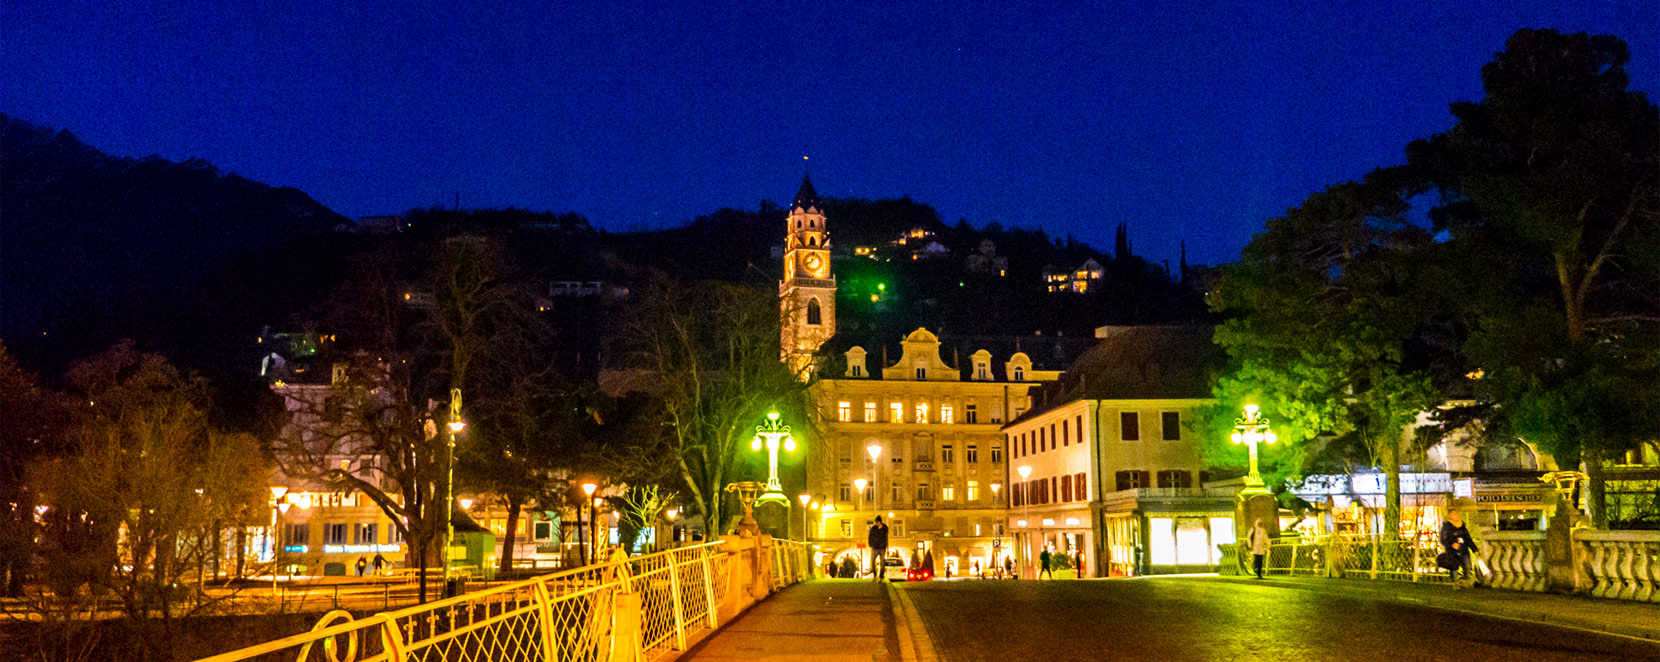 Merano panoramic night spa town